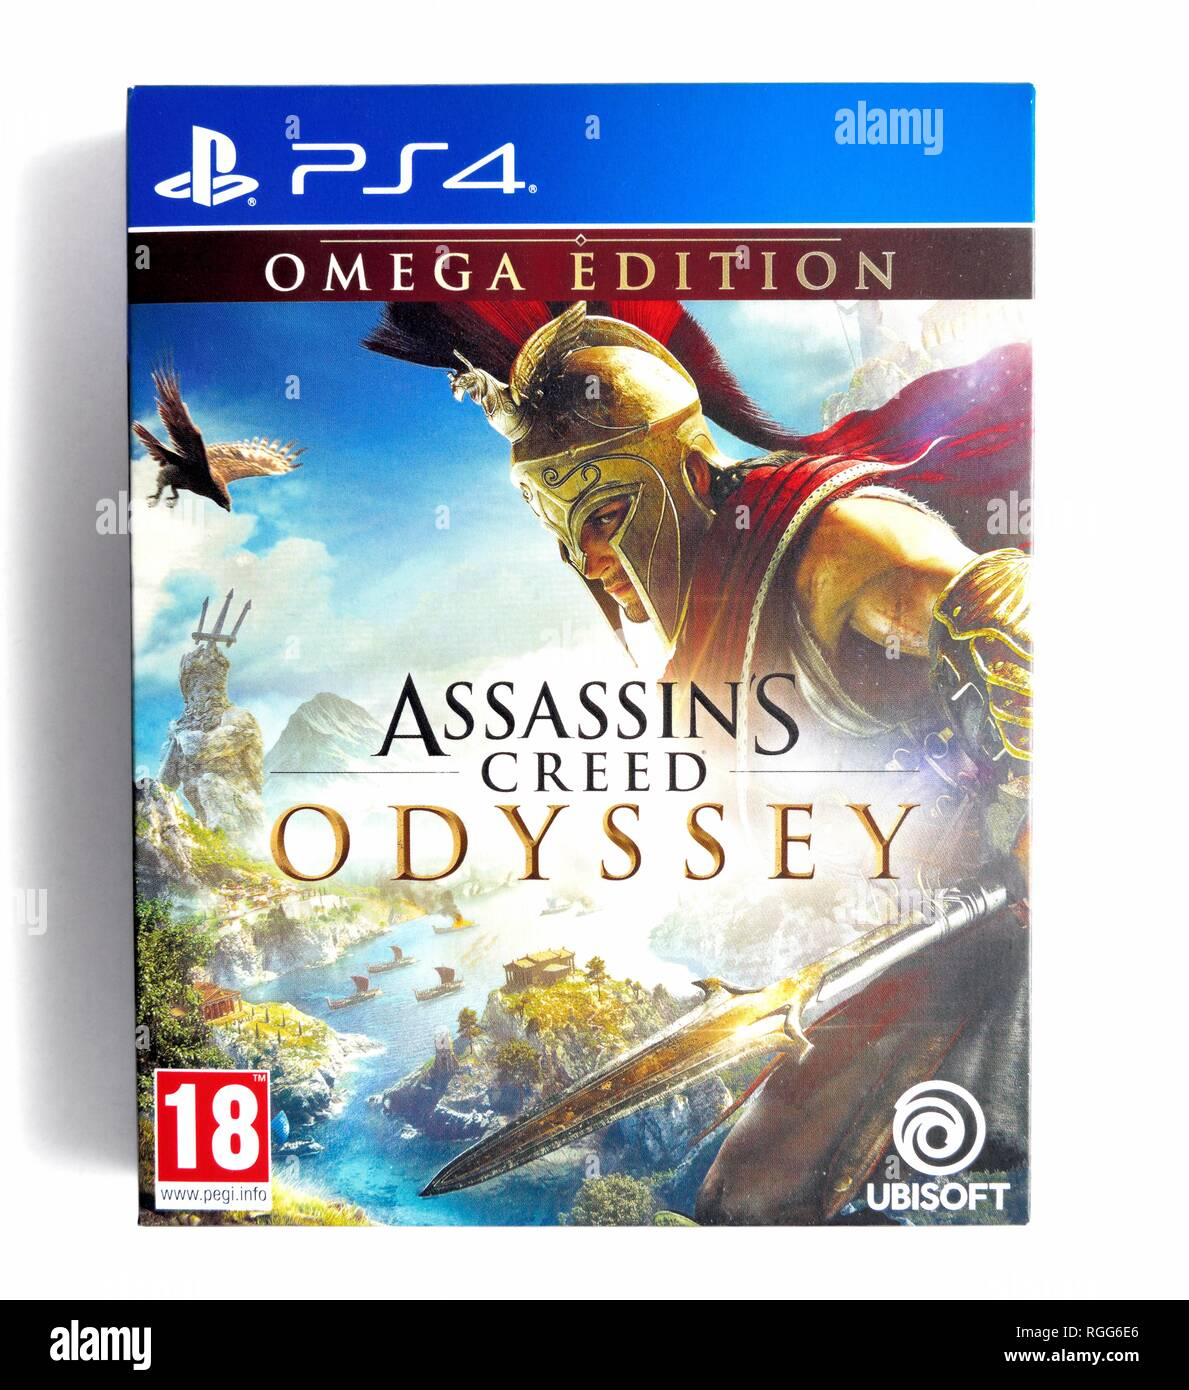 PS4 video game Assassins creed Odyssey - Stock Image